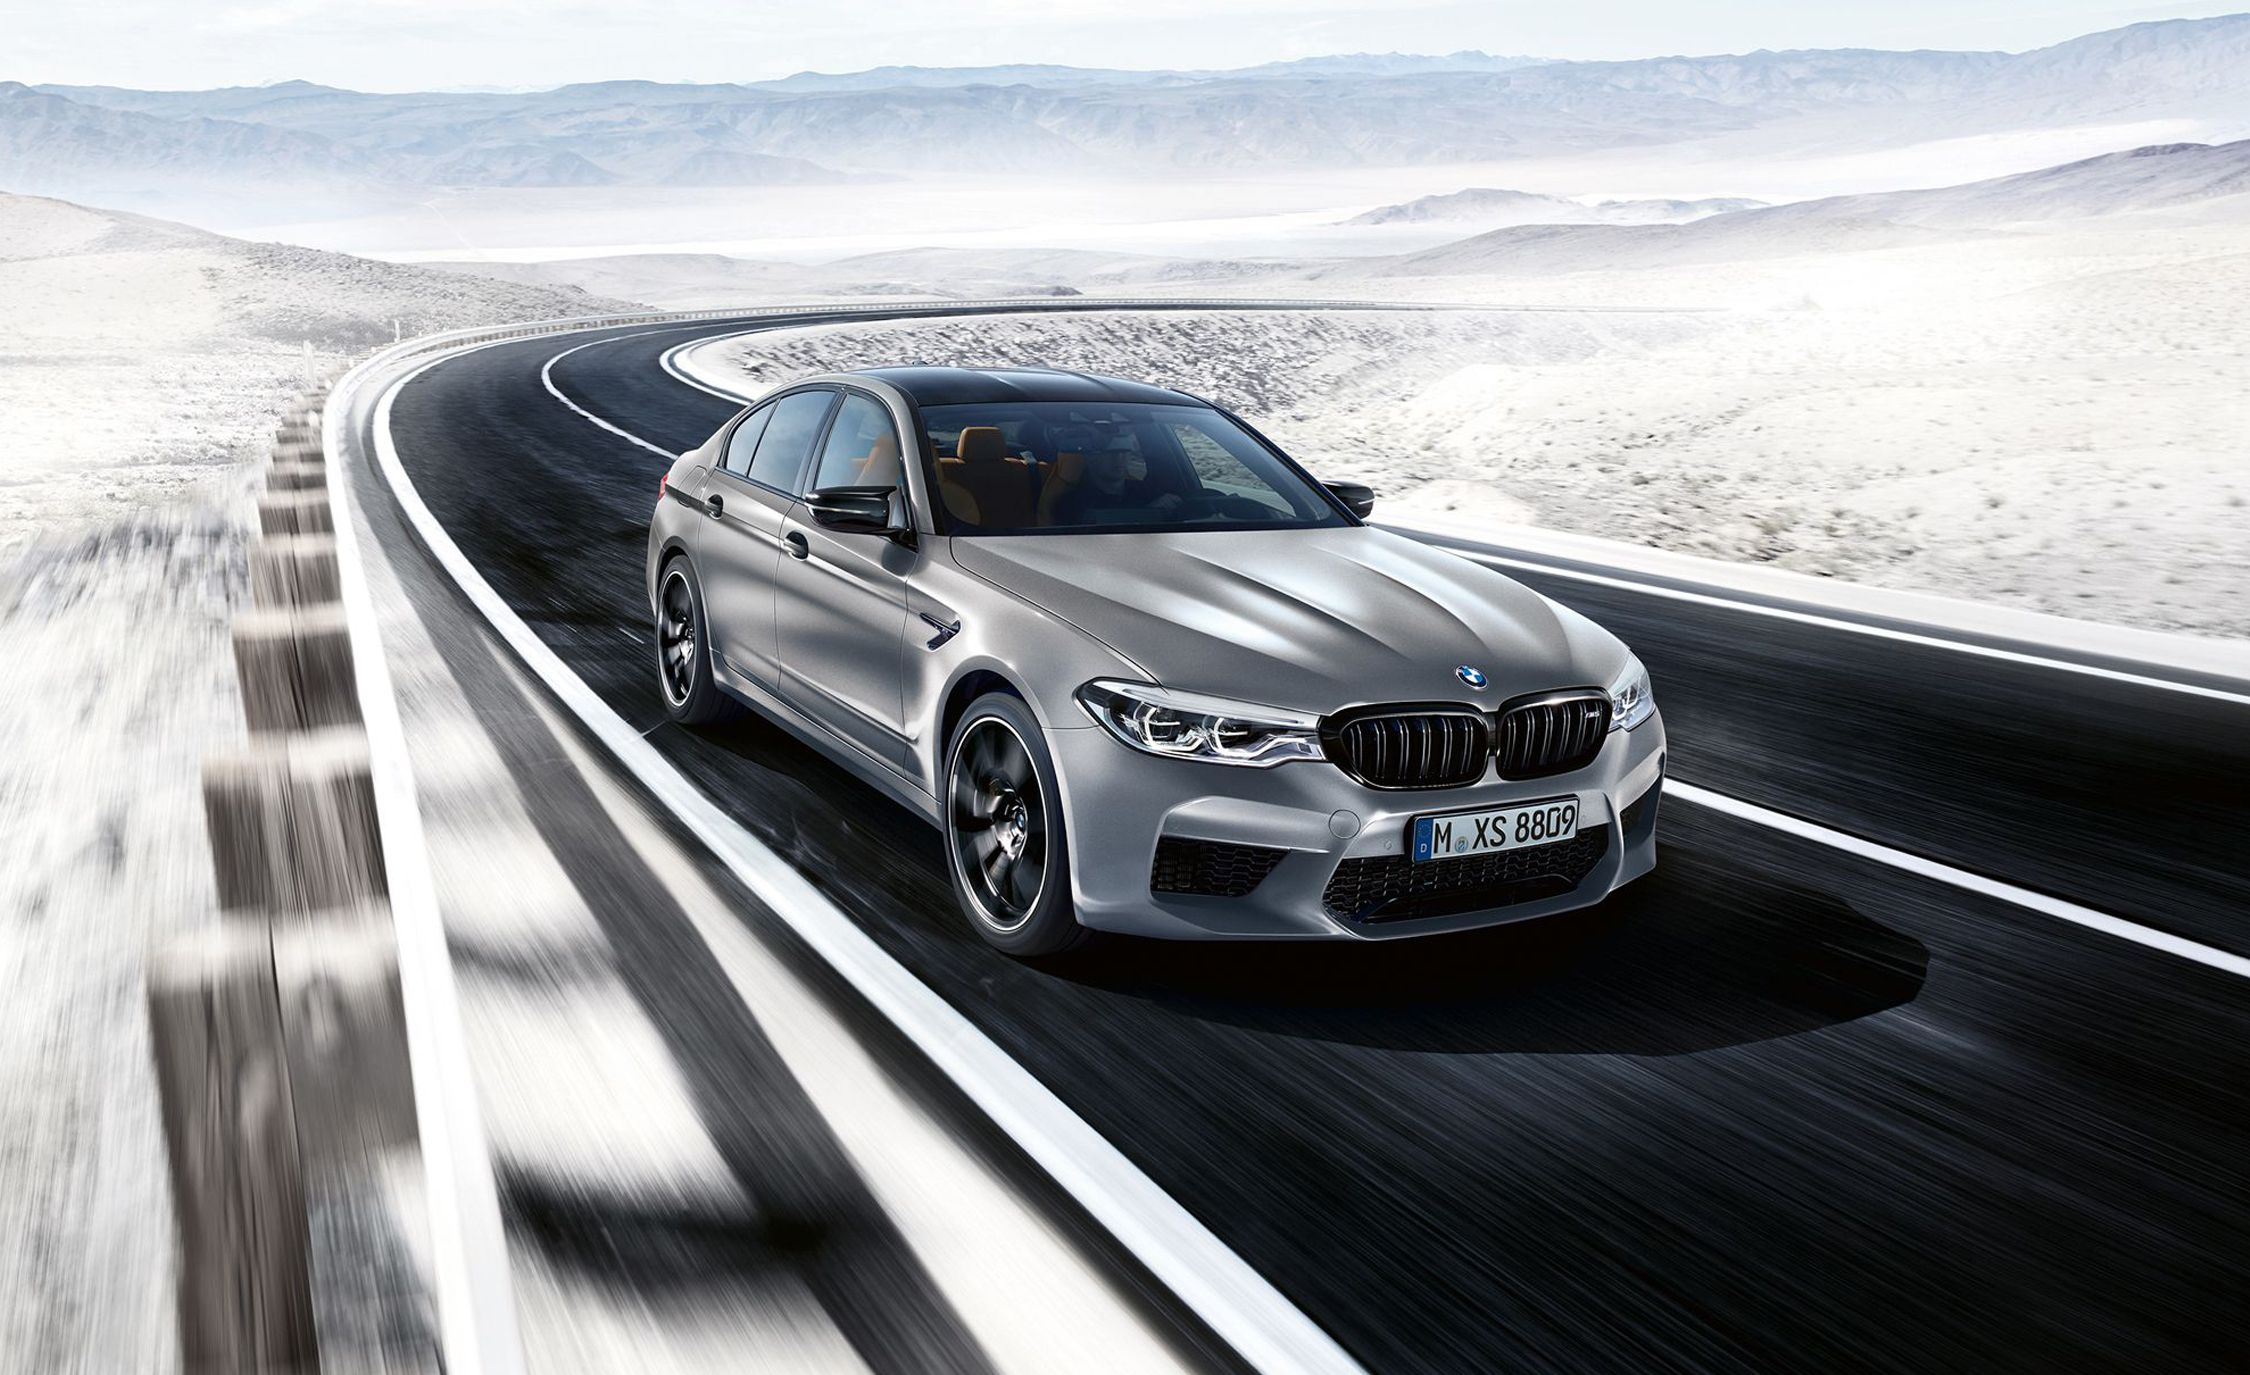 2019 bmw m5 reviews | bmw m5 price, photos, and specs | car and driver